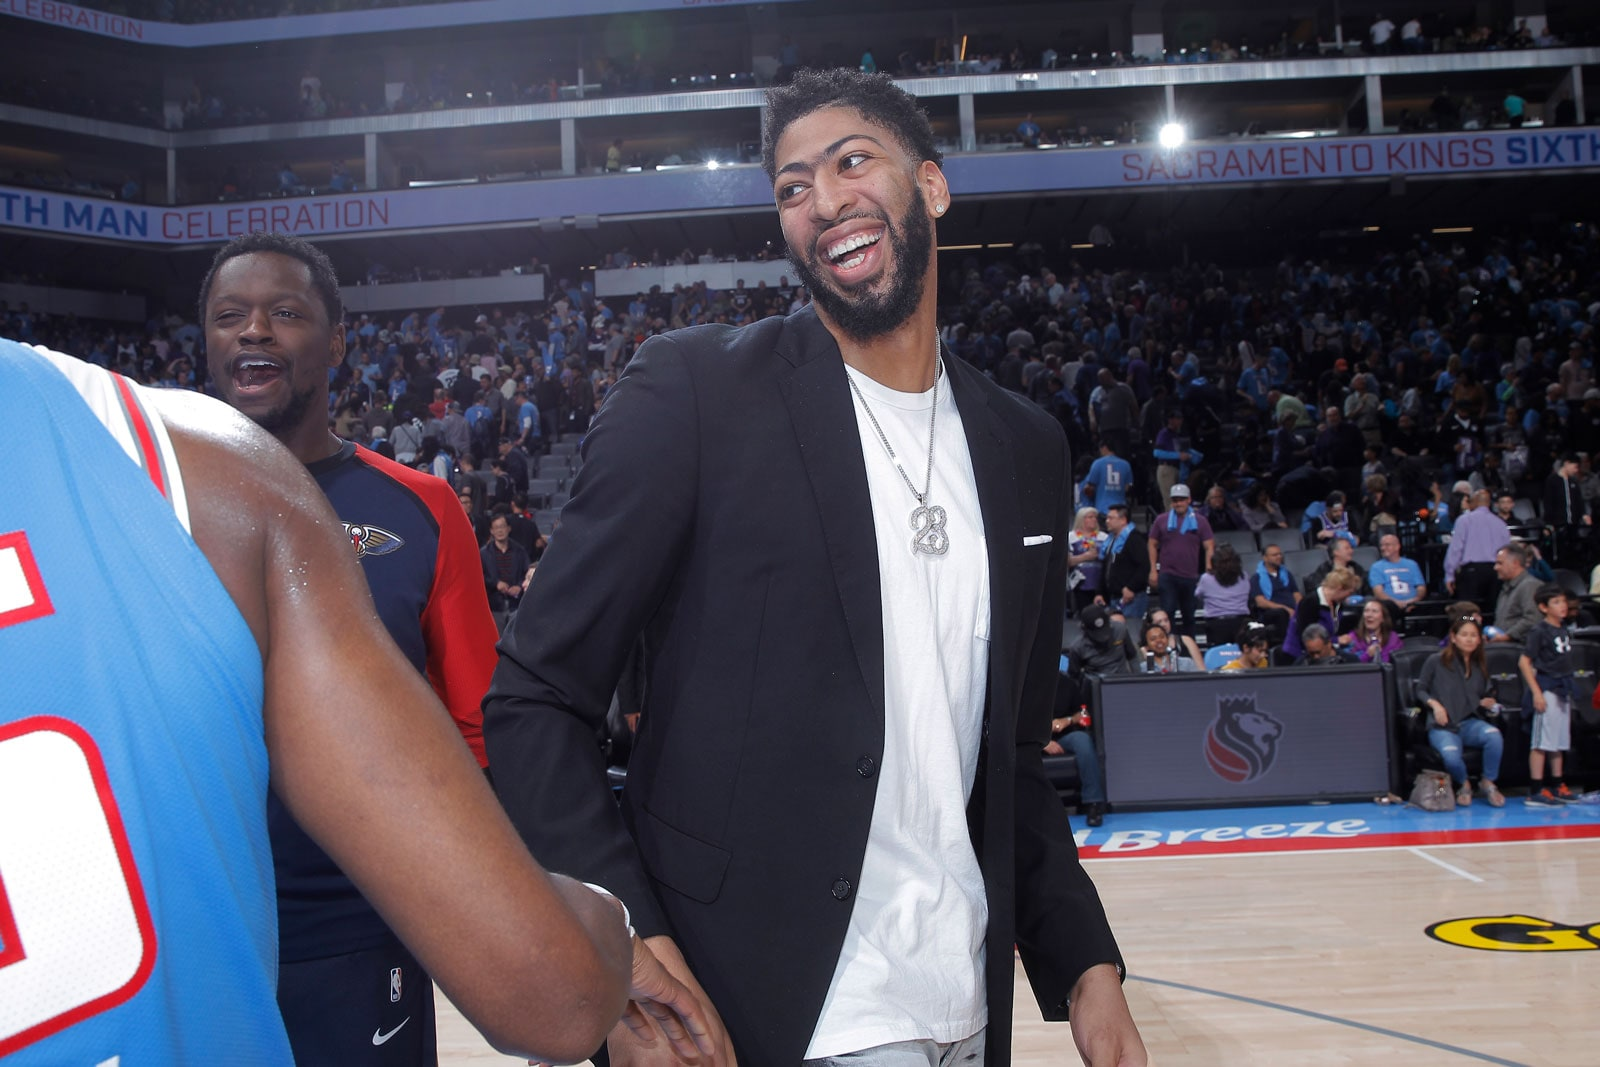 Anthony Davis #23 of the New Orleans Pelicans greets players after the game against the Sacramento Kings on April 7, 2019 at Golden 1 Center in Sacramento, California.